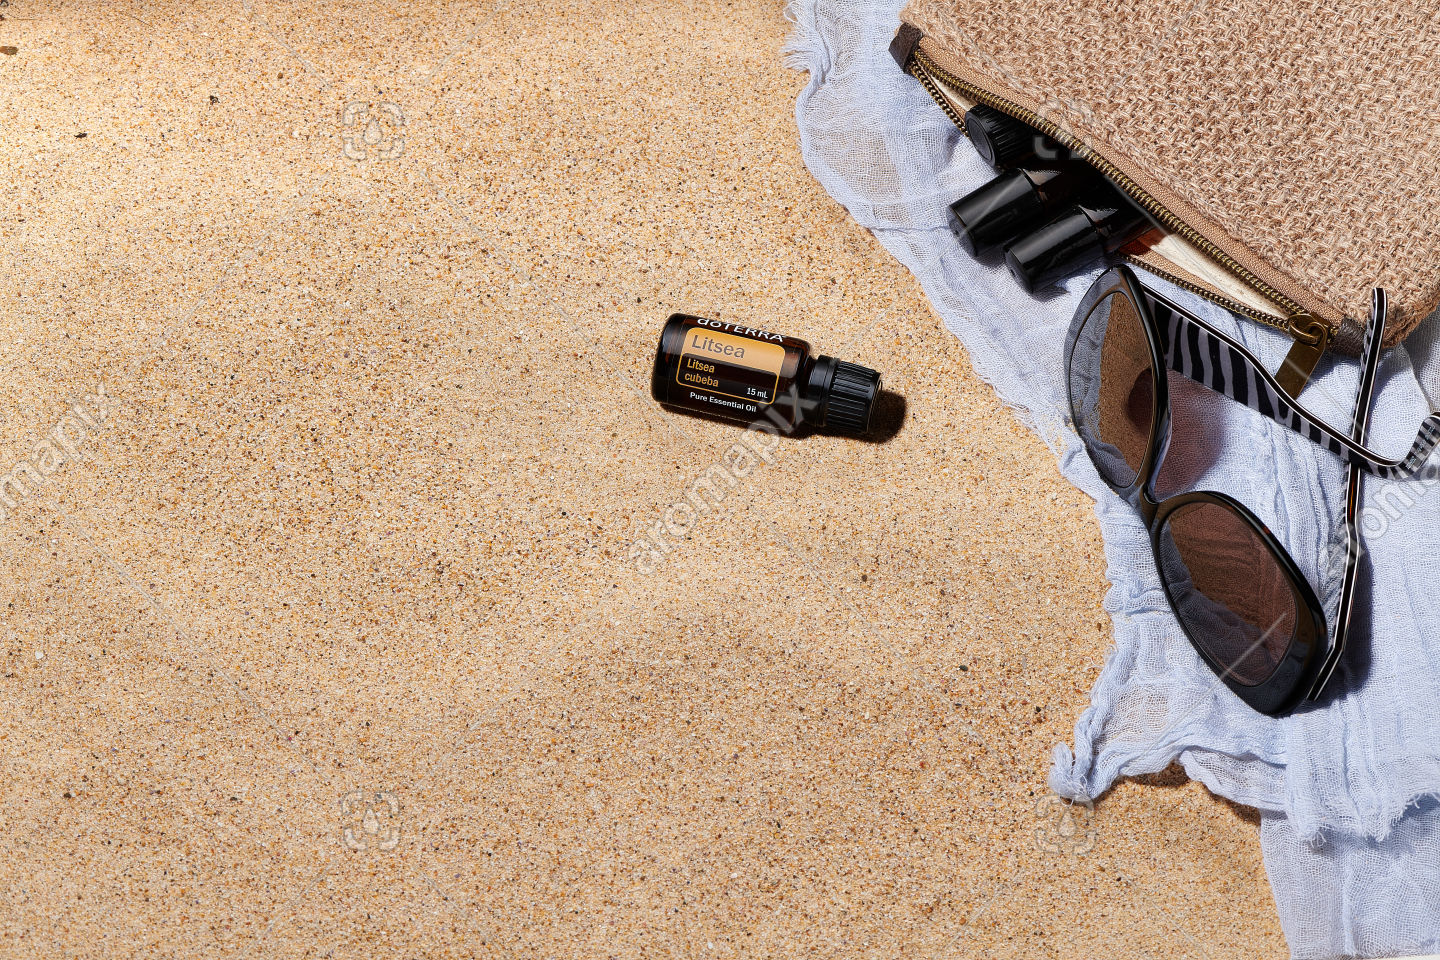 doTERRA Litsea with accessories on sand